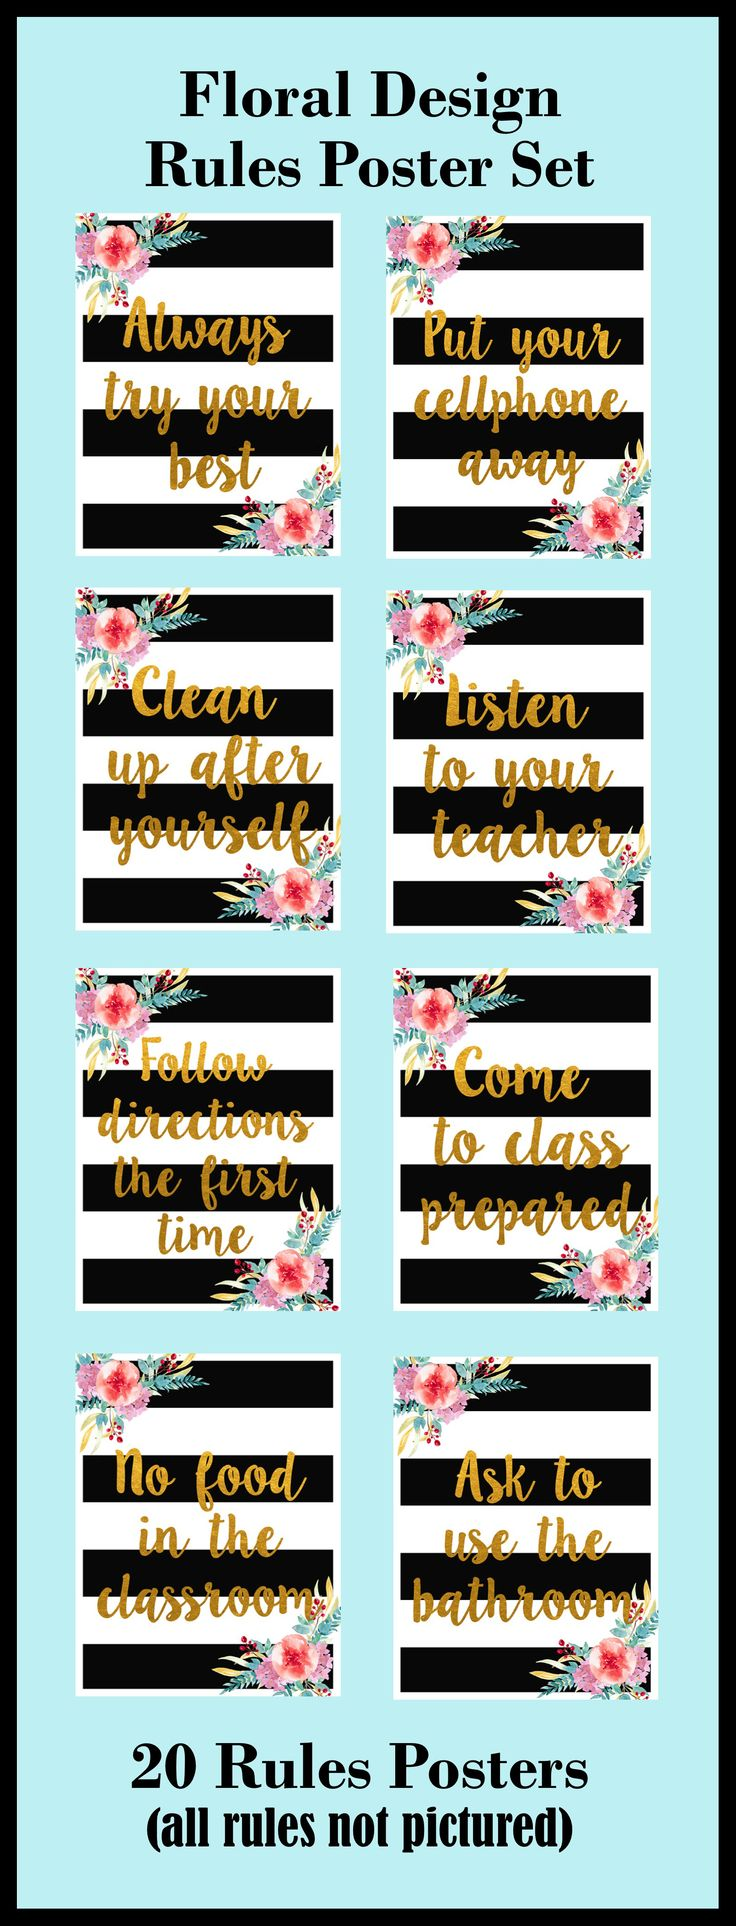 Poster design rules - Floral Design Rules Poster Set Cursive 20 Posters 8 5x11 Inches Jpeg